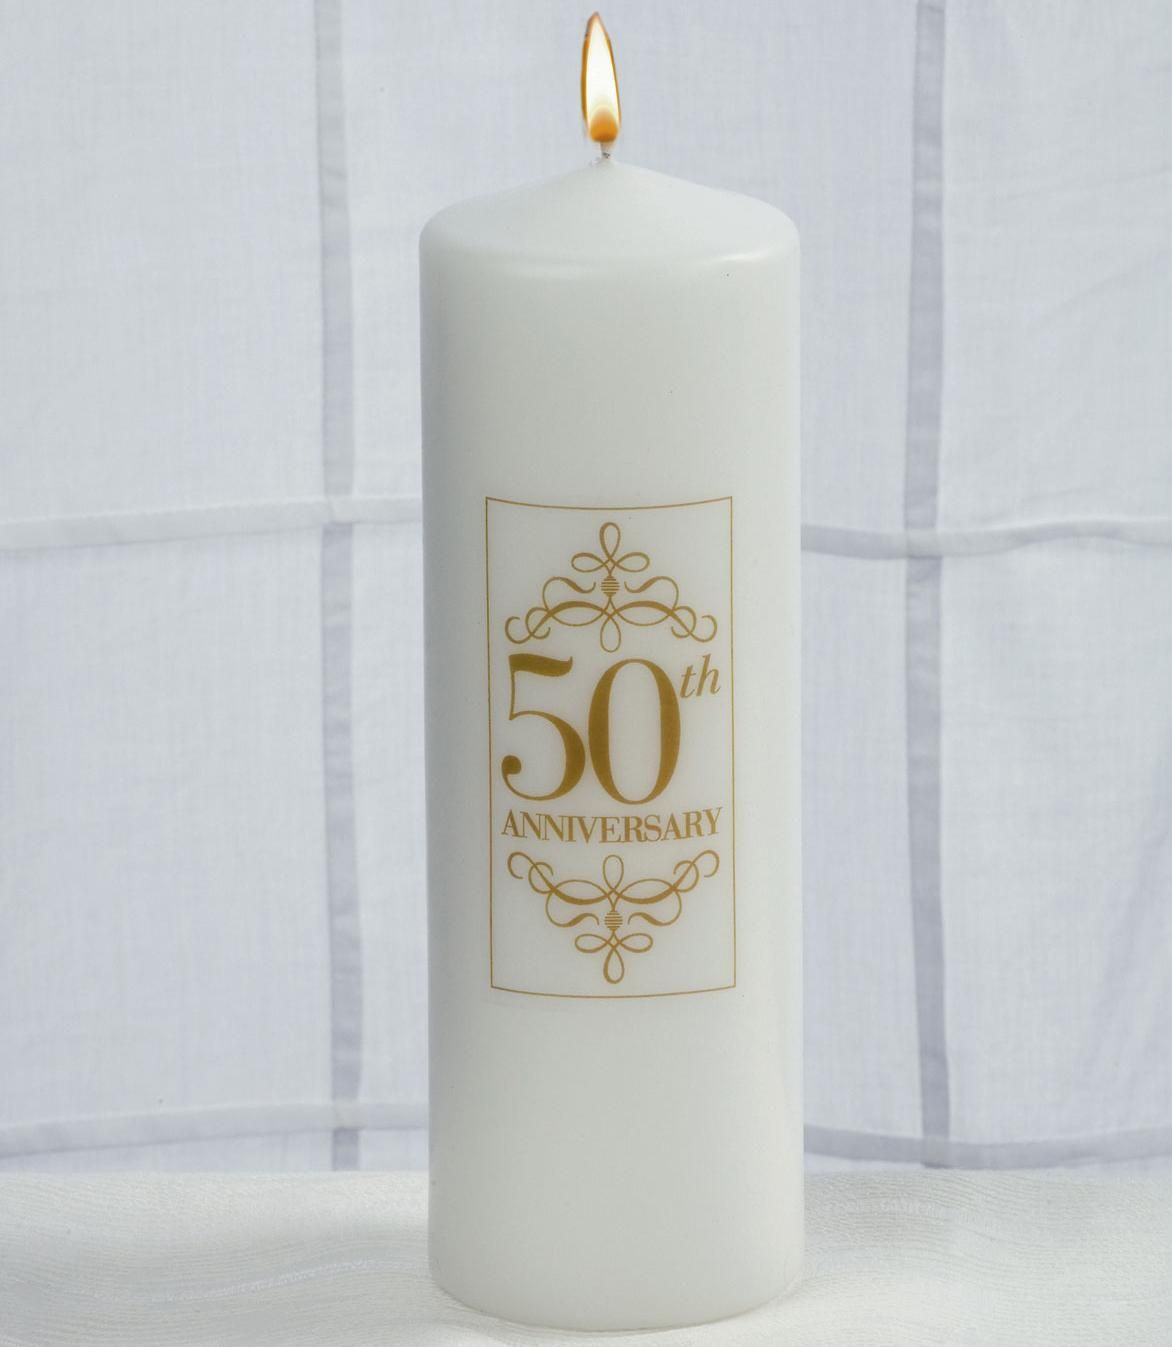 50th Wedding Anniversary Candle Made Of Solid White Wax It Features A Clic Cylindrical Shape